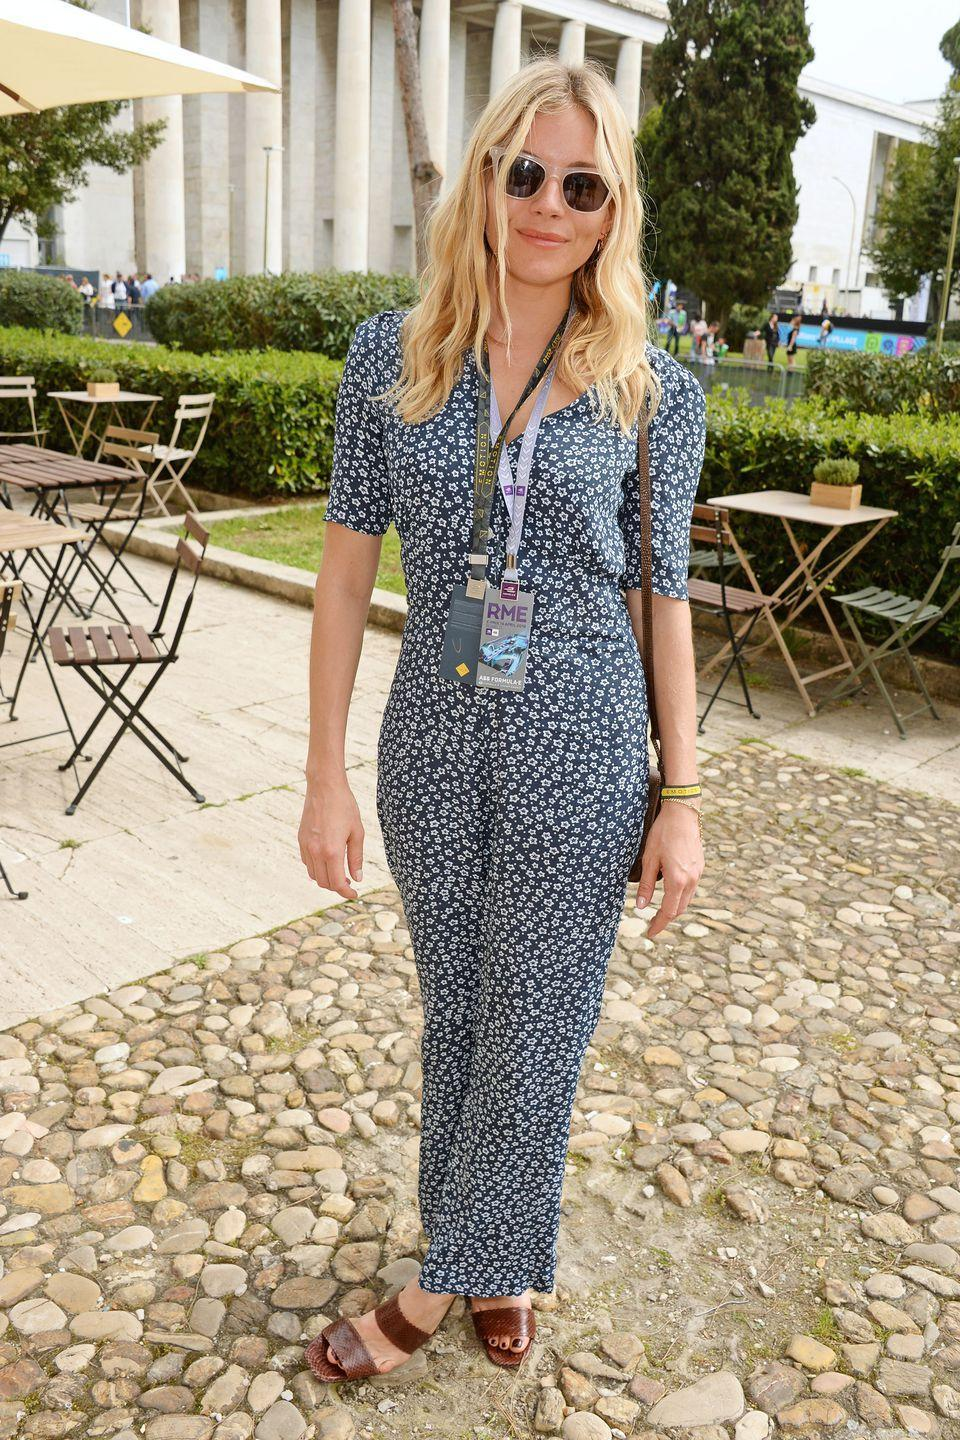 <p>Having been besieged by gossip and gruelling media scrutiny, the actress tells us how she finally found calm</p>